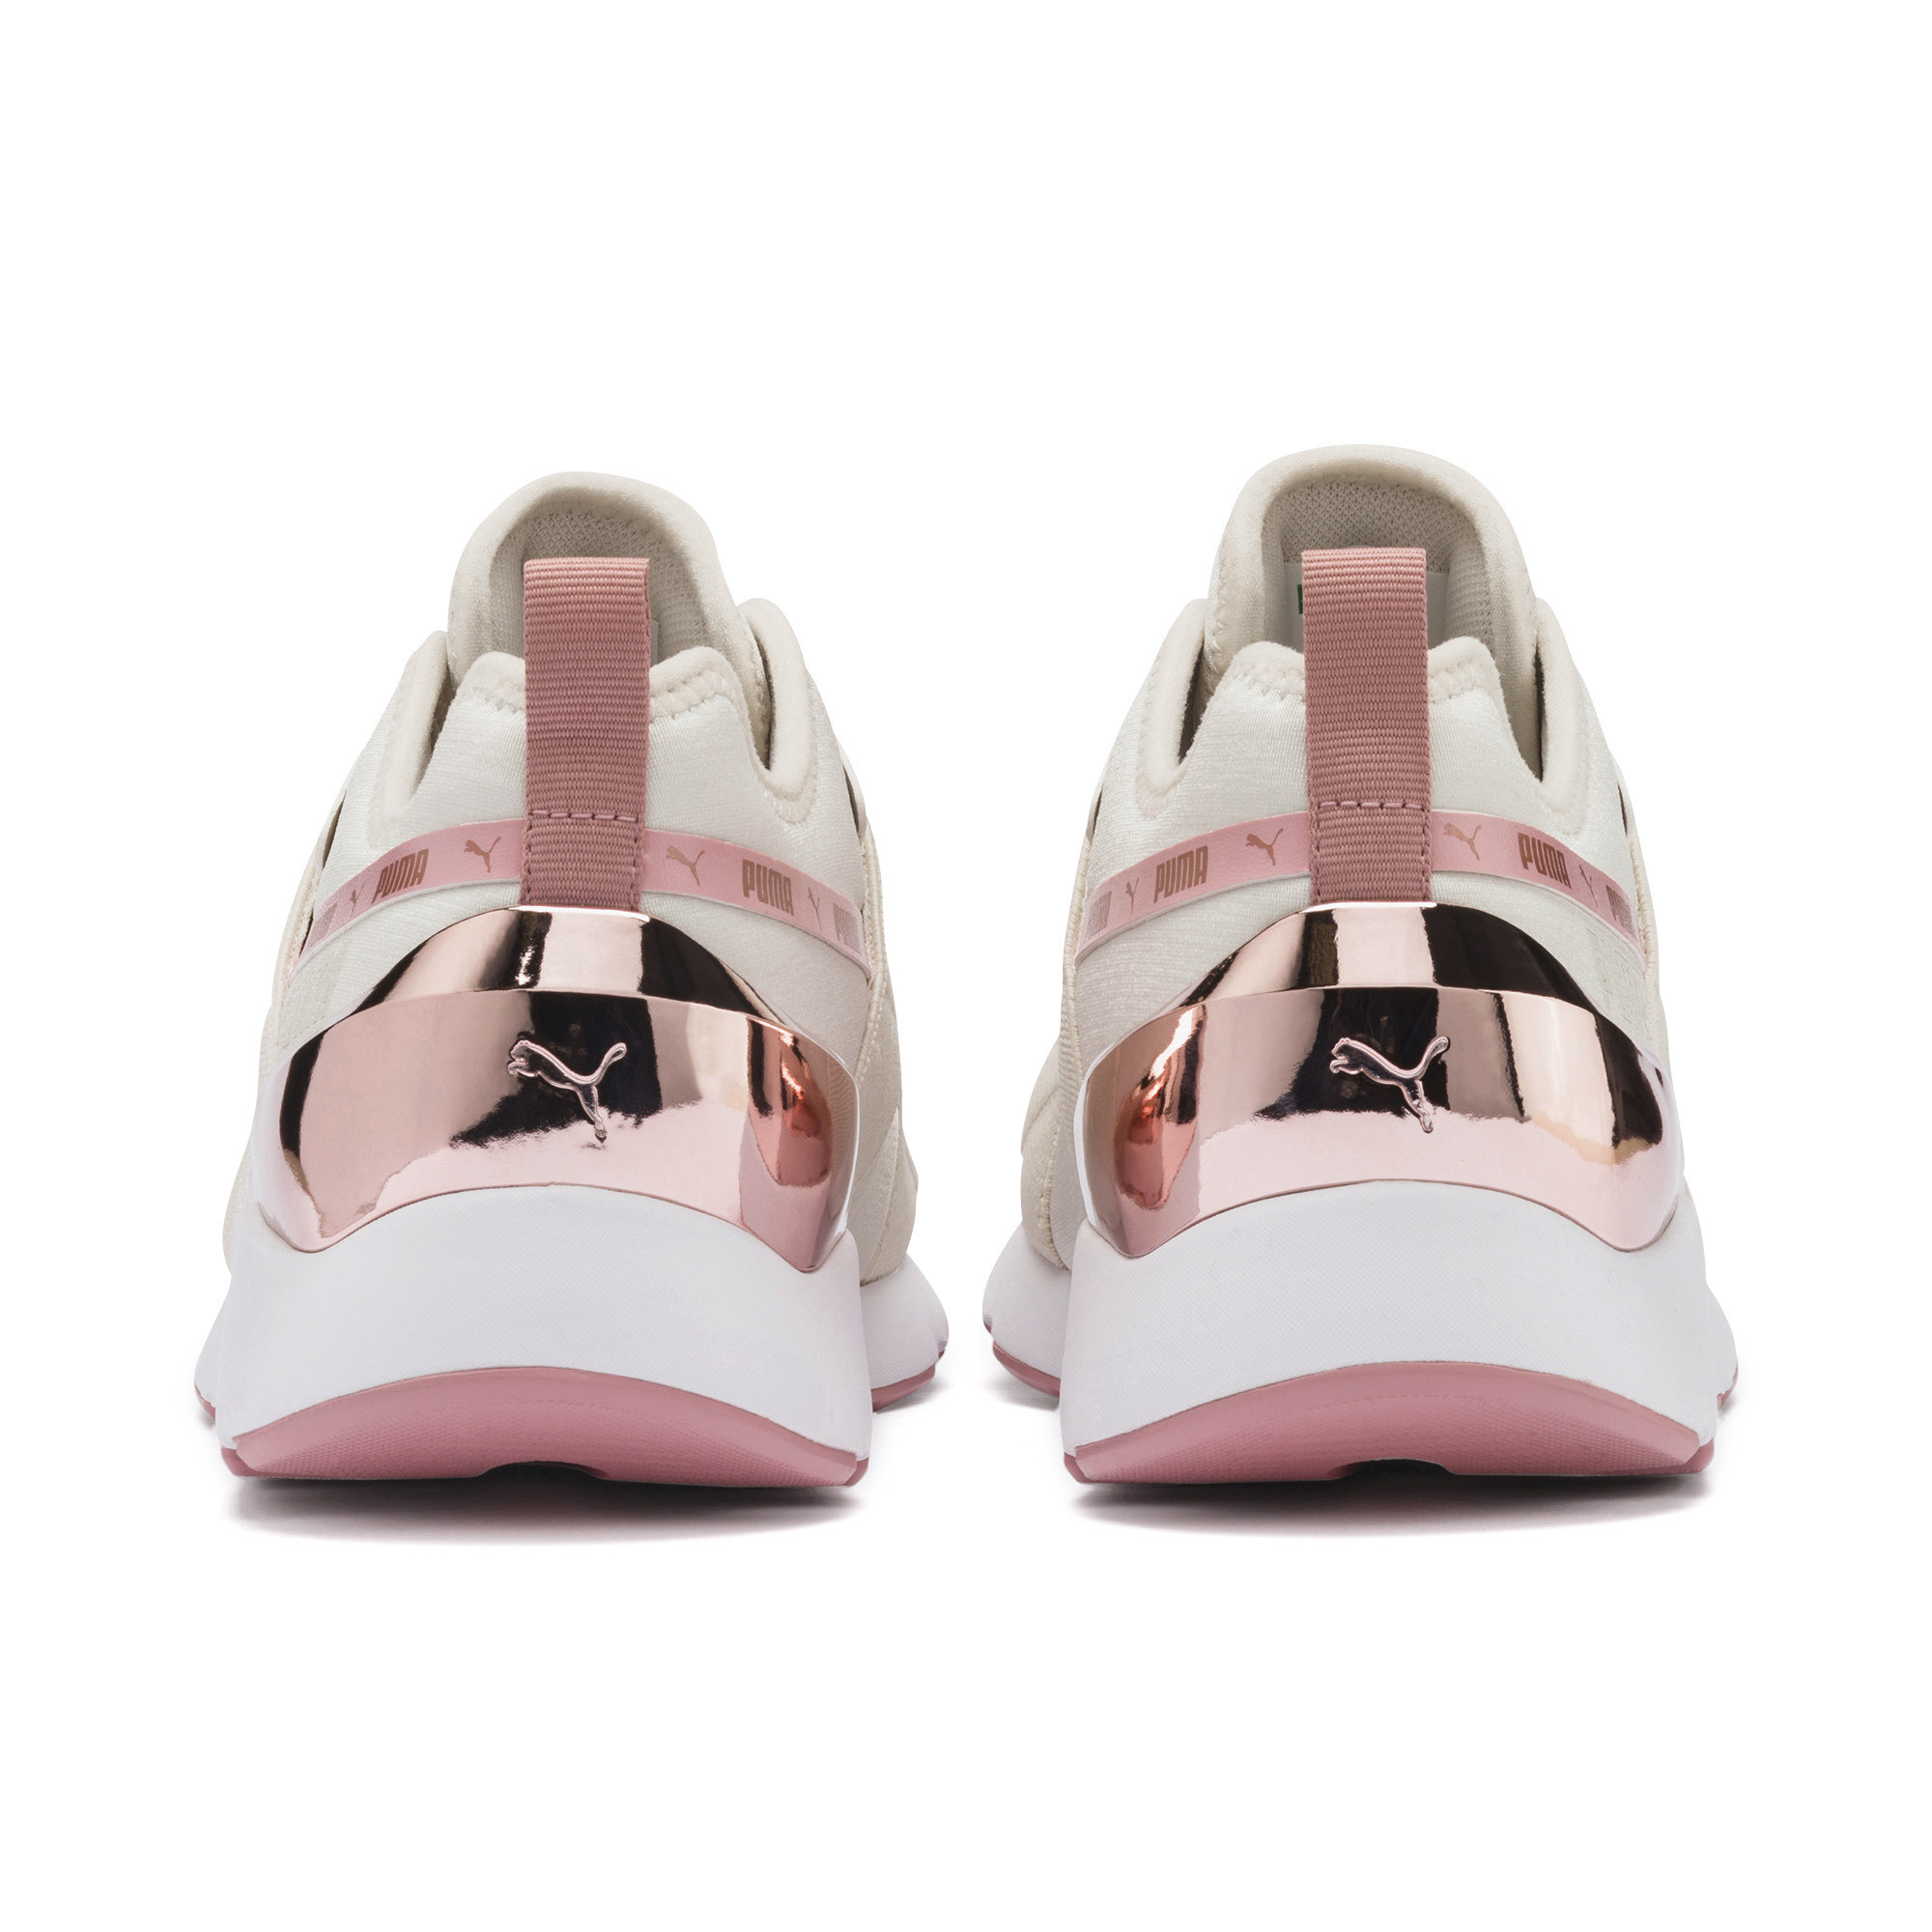 PUMA-Muse-X-2-Metallic-Women-039-s-Sneakers-Women-Shoe-Evolution thumbnail 10